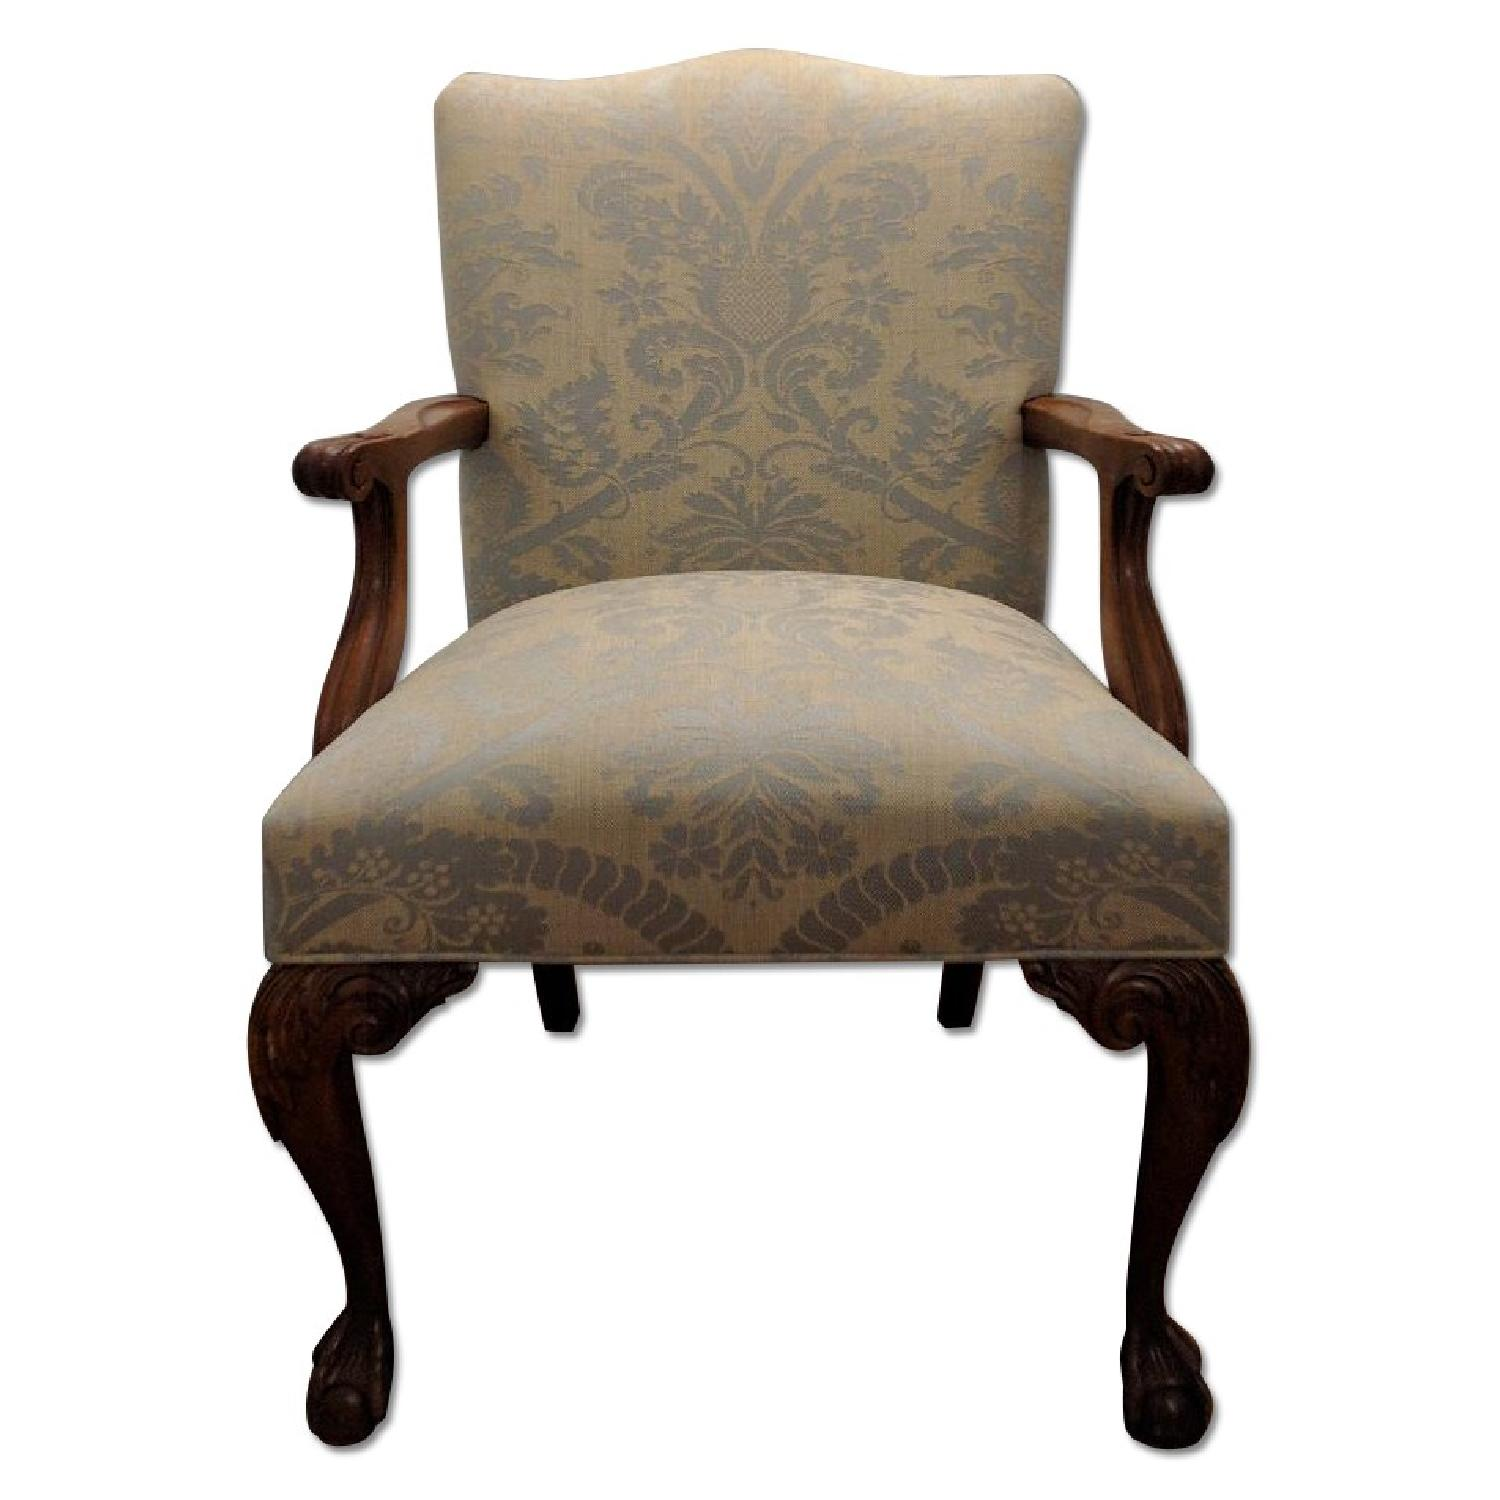 Antique Re-Upholstered Chippendale Carved Wood Chair - image-0